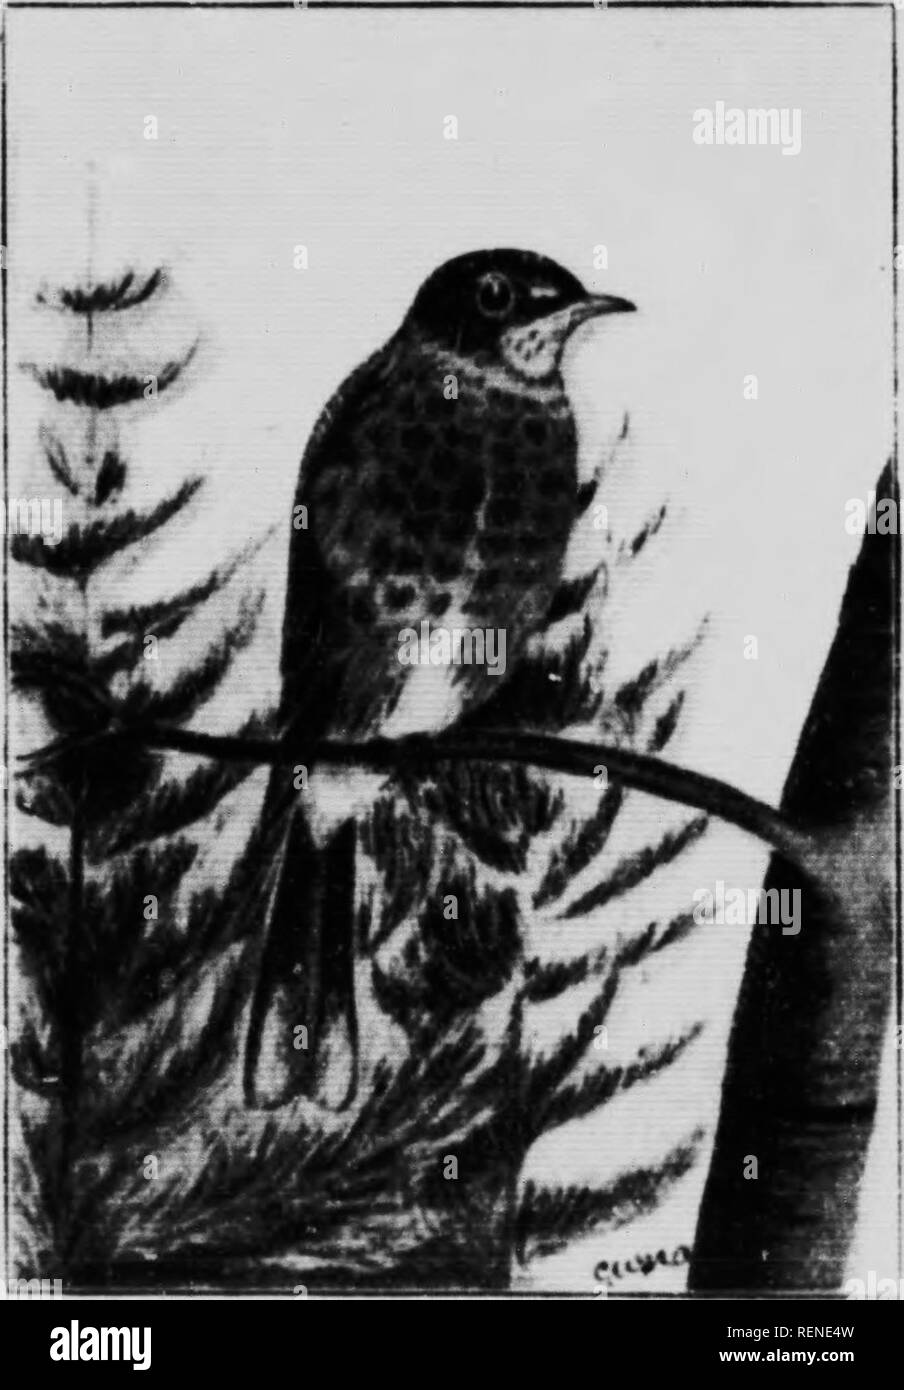 . Check list of the vertebrates of Ontario and catalogue of specimens in the Biological Section of the Provincial Museum [microform] : birds. Musée royal de l'Ontario; Royal Ontario Museum; Oiseaux; Oiseaux; Birds; Birds. BIRDS OF ONTARIO. 81 (757) Gray>chMked Thrush. (Hylocichia aliciae.) A common migrant in spring and autumn, breeds far north. Arrives about the middle of May, departs early in October. Mr. Saunders states that n specimen of H. a. bicknelli was taken by Mr. Robert Elliott near Bryanston, Ont., September 19th, 1898. (75bc) Olive-backed Thrush. (Hylocichia ustuluta swainsonii Stock Photo